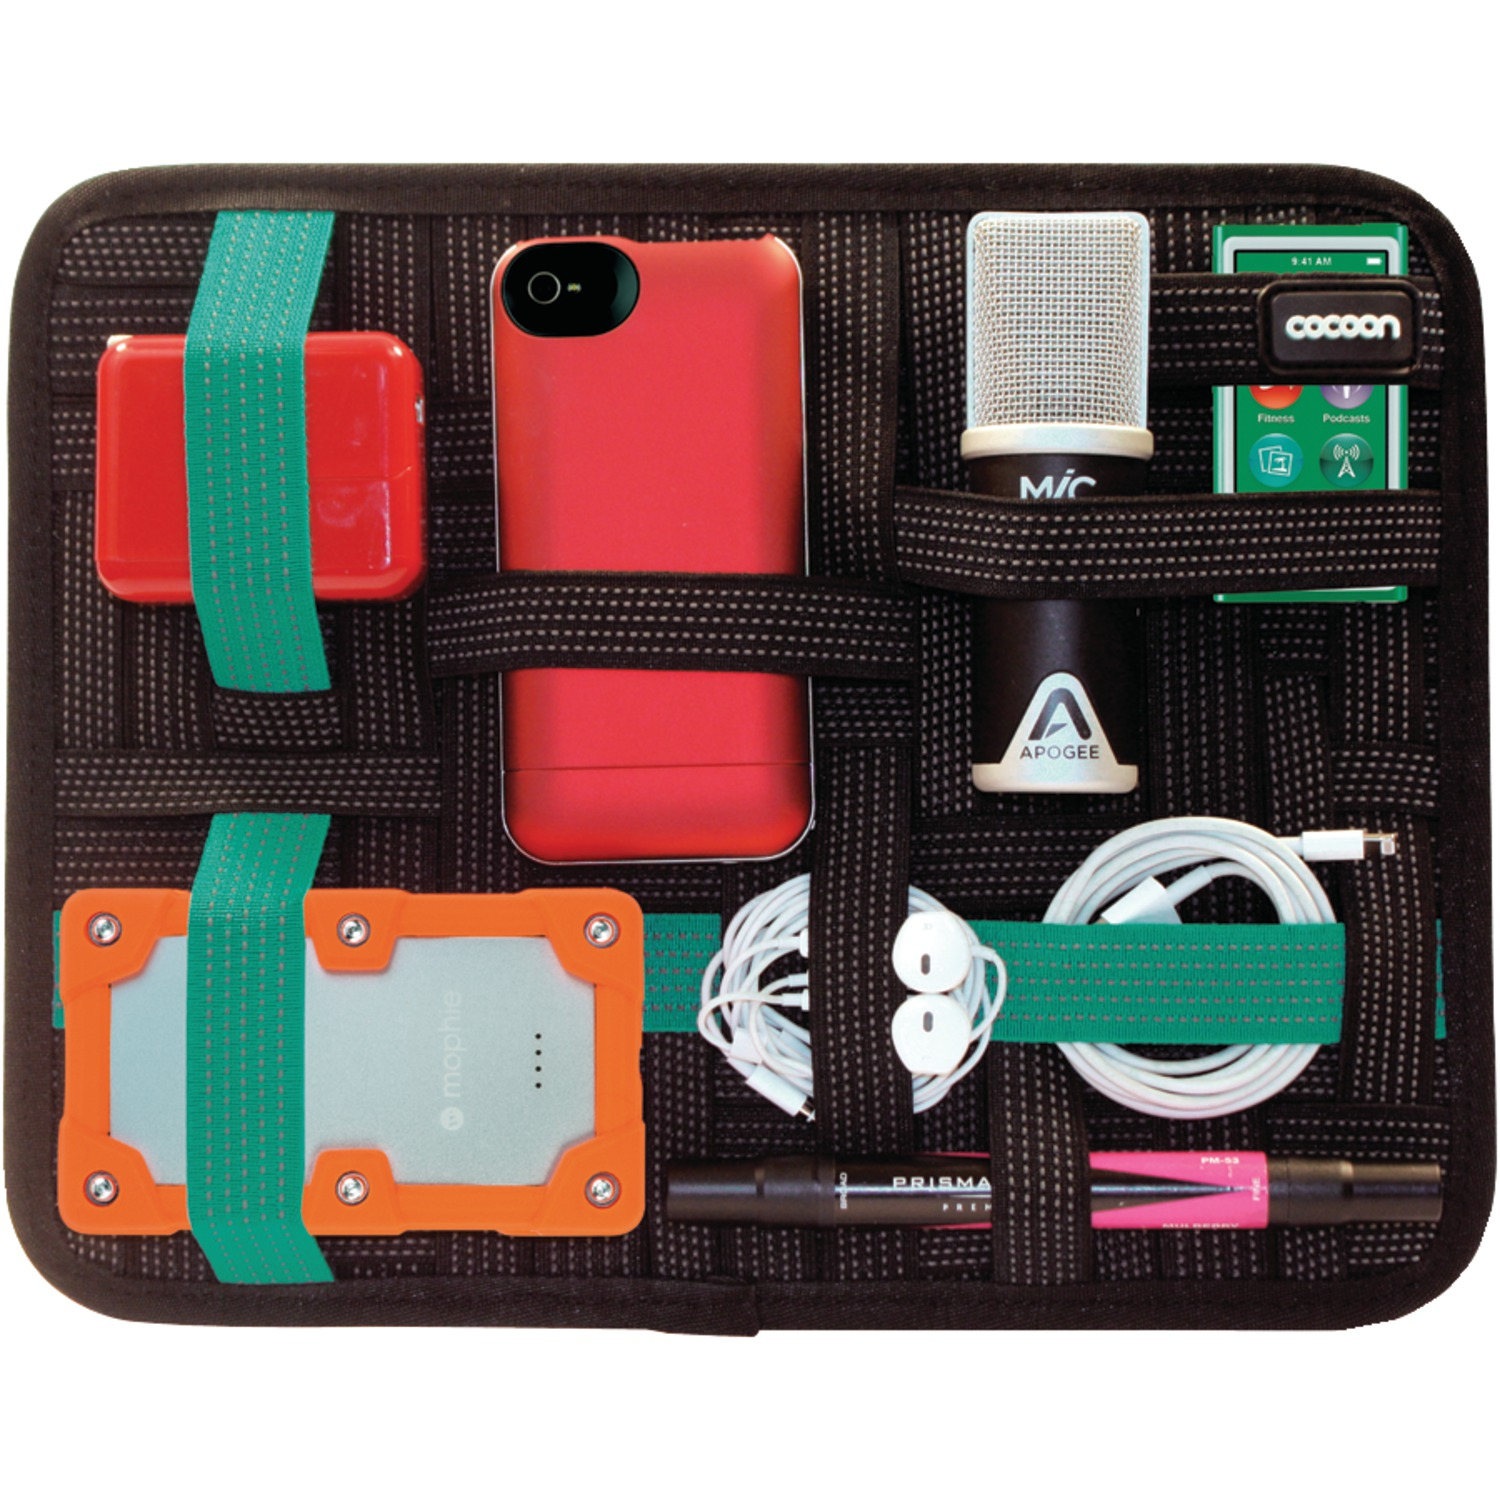 "Cocoon CPG46 GRID-IT Organizer with Tablet Pocket (11"")"